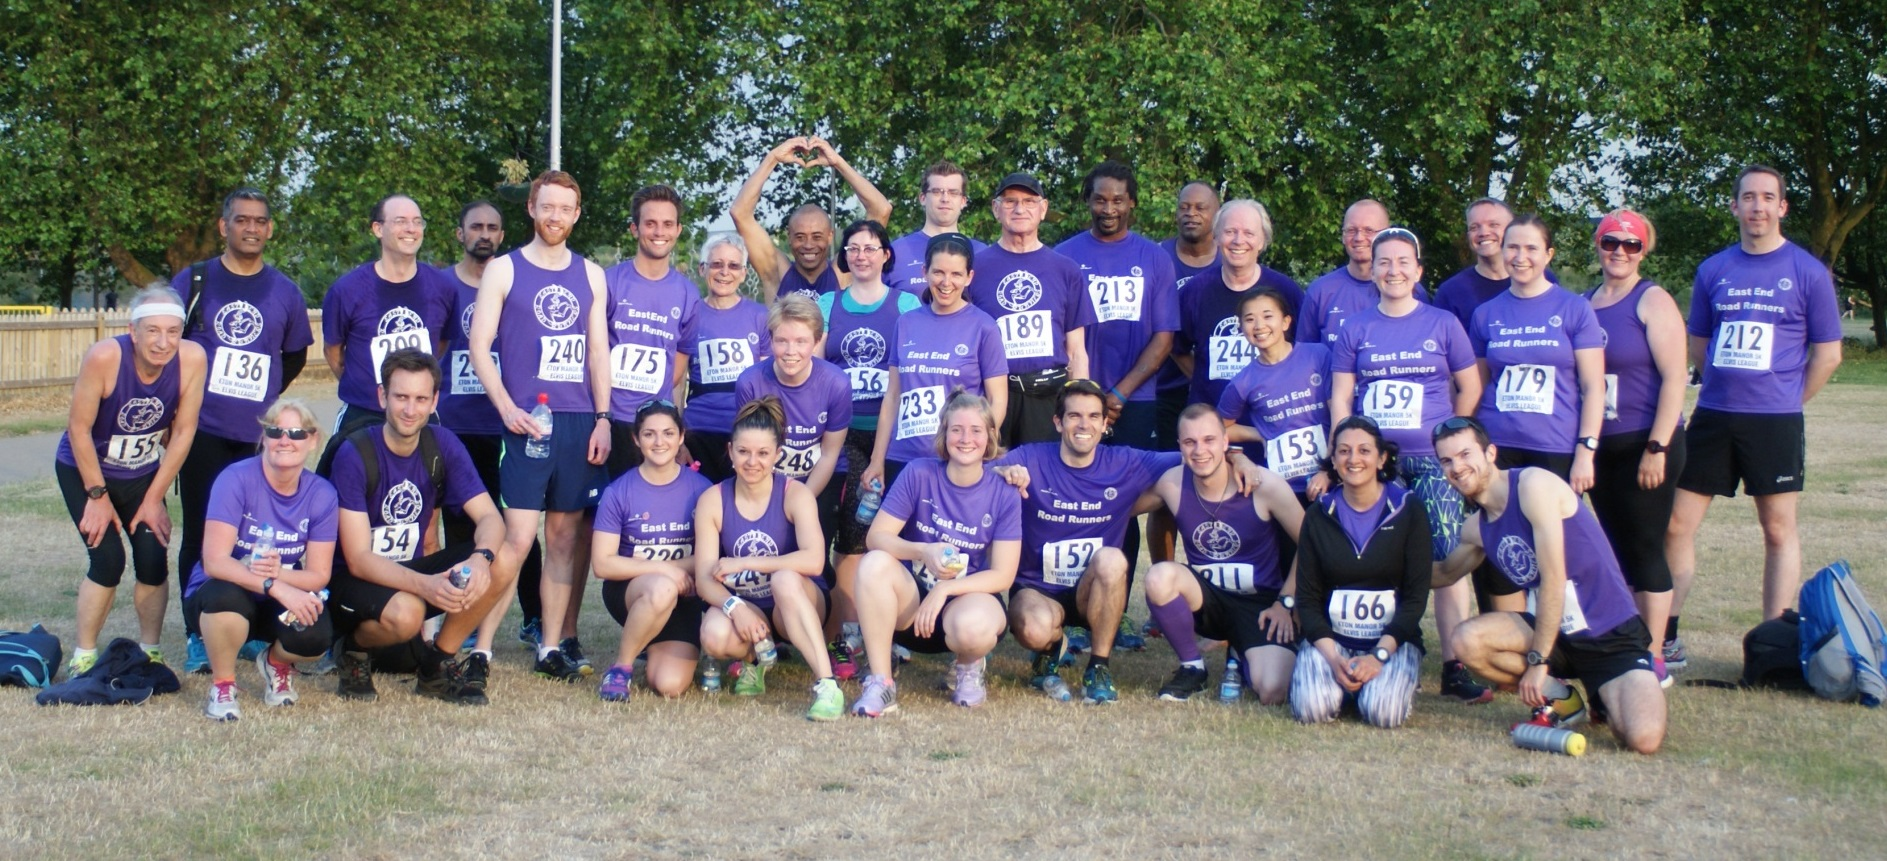 A group photo of EastEndRoad Runners